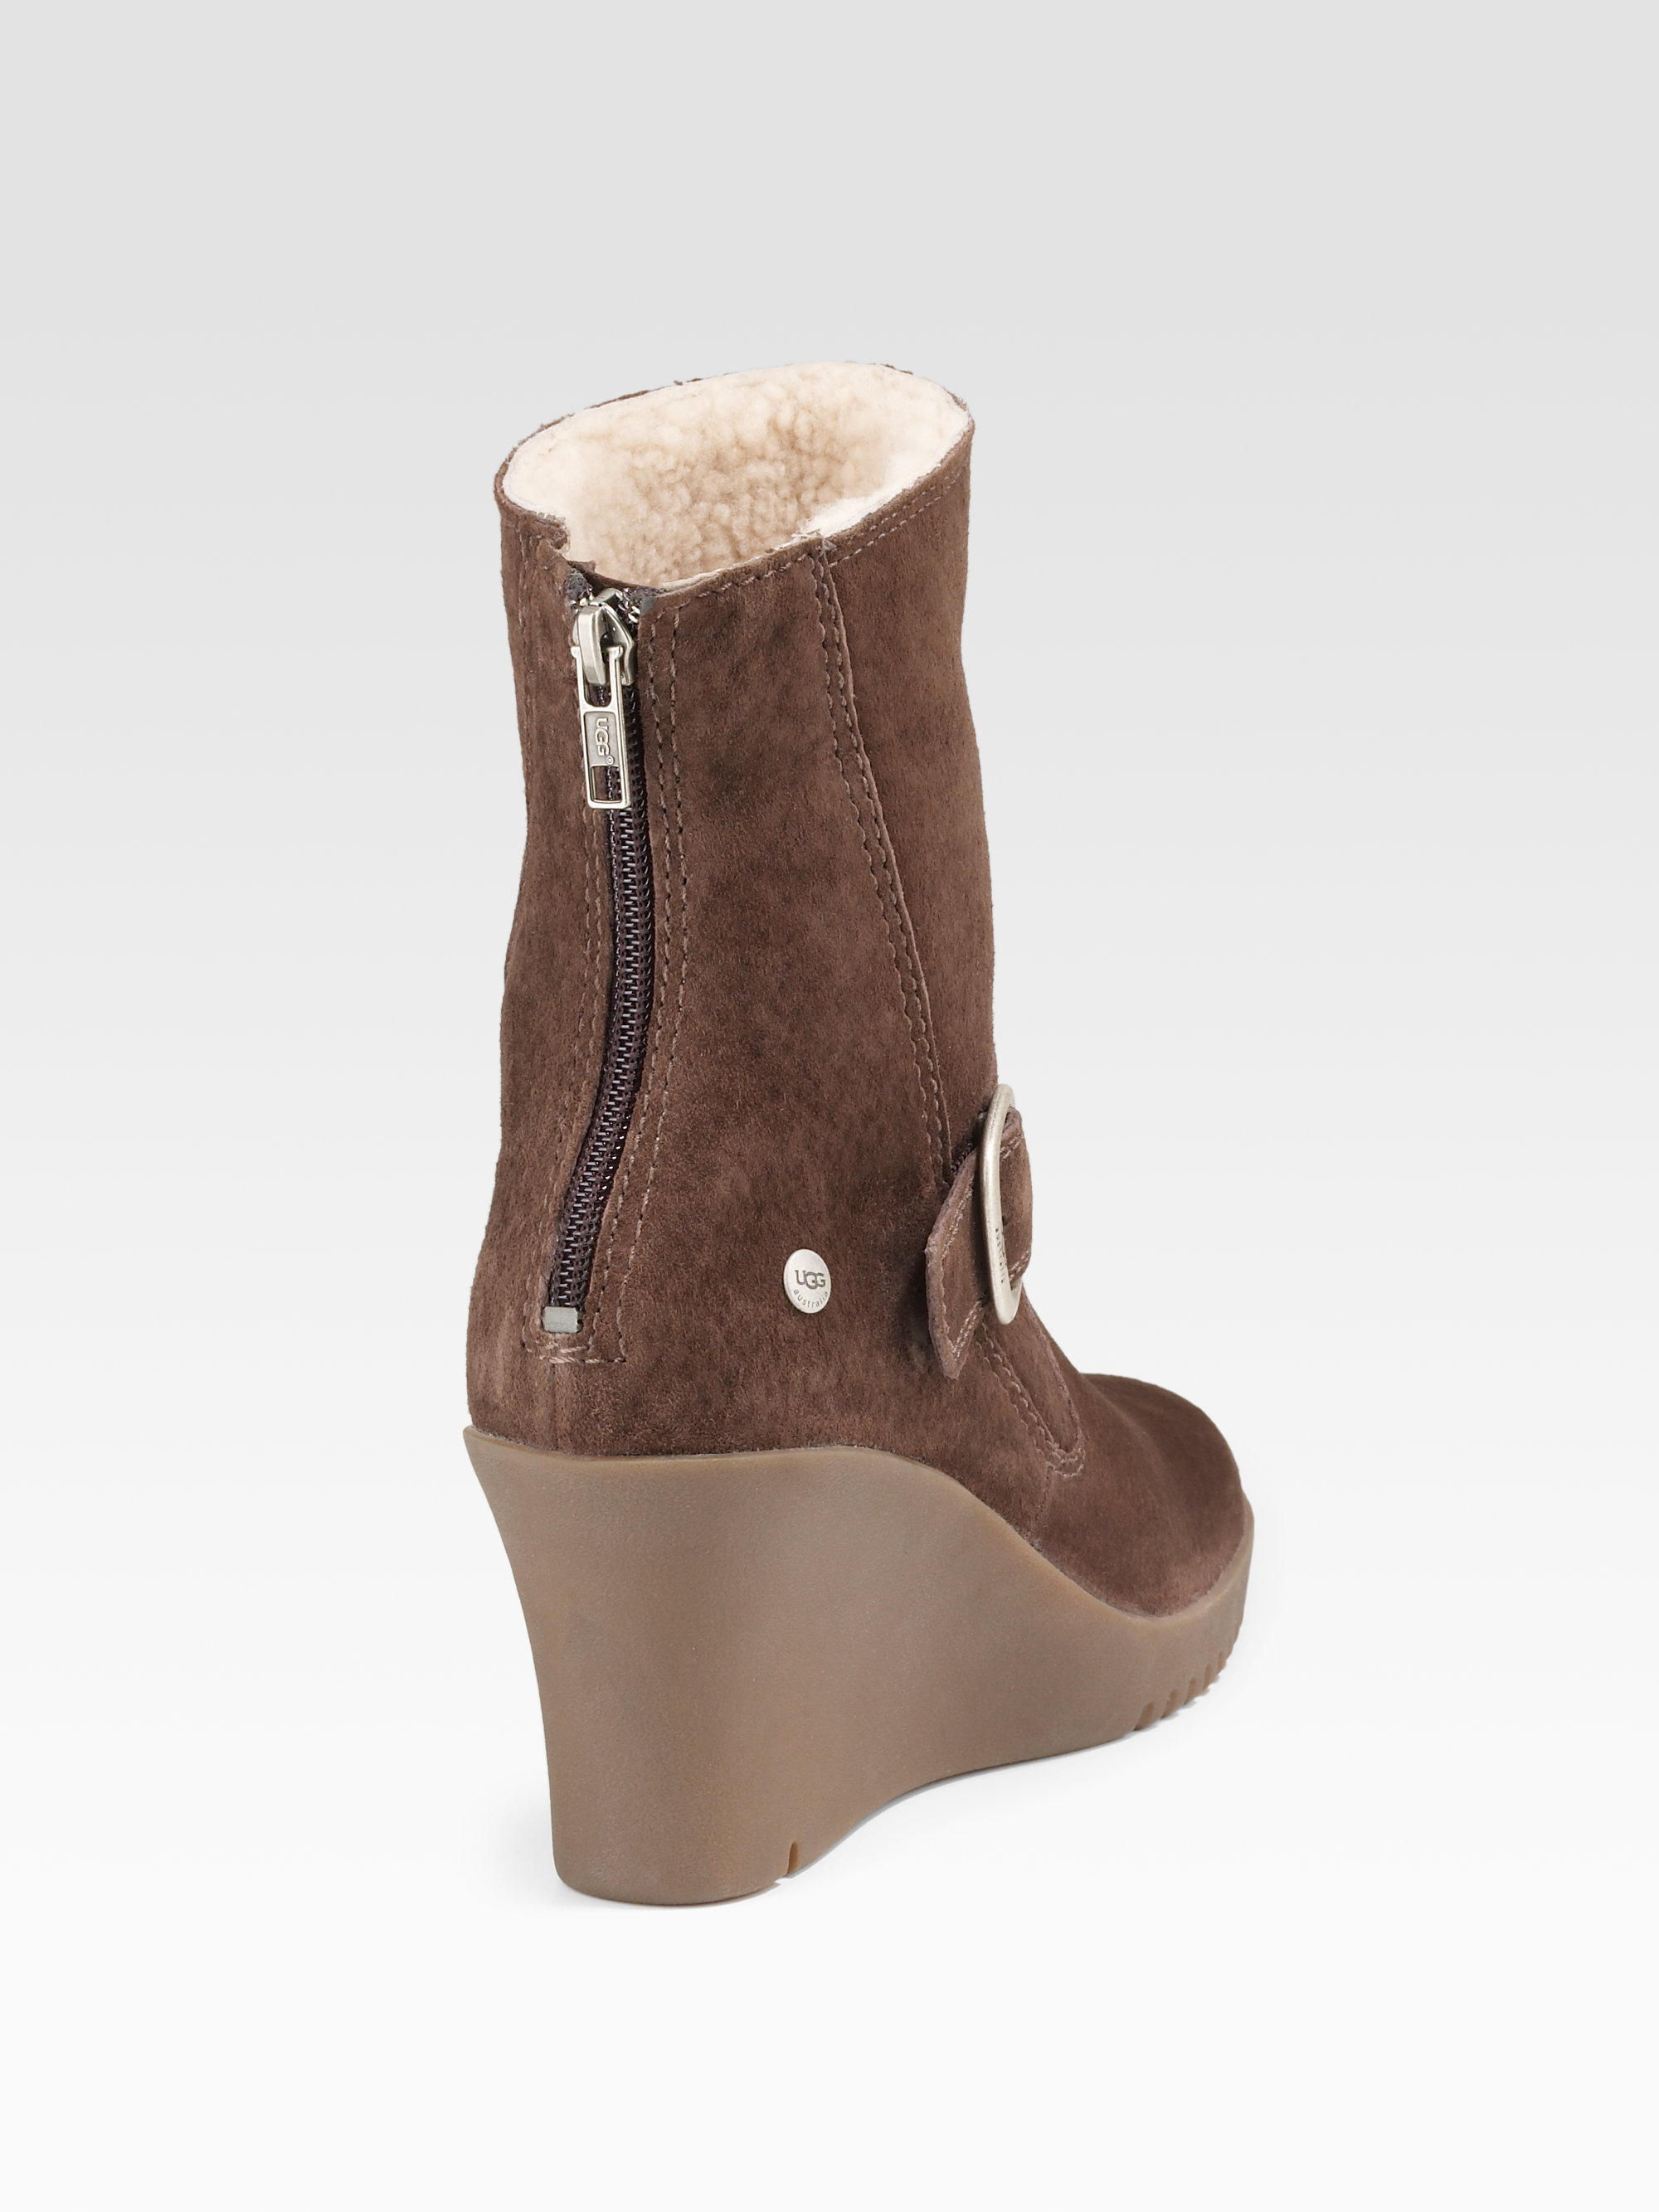 a2f4c499fb67 ... usa lyst ugg gissella suede wedge ankle boots in brown fa1c3 2b9f3